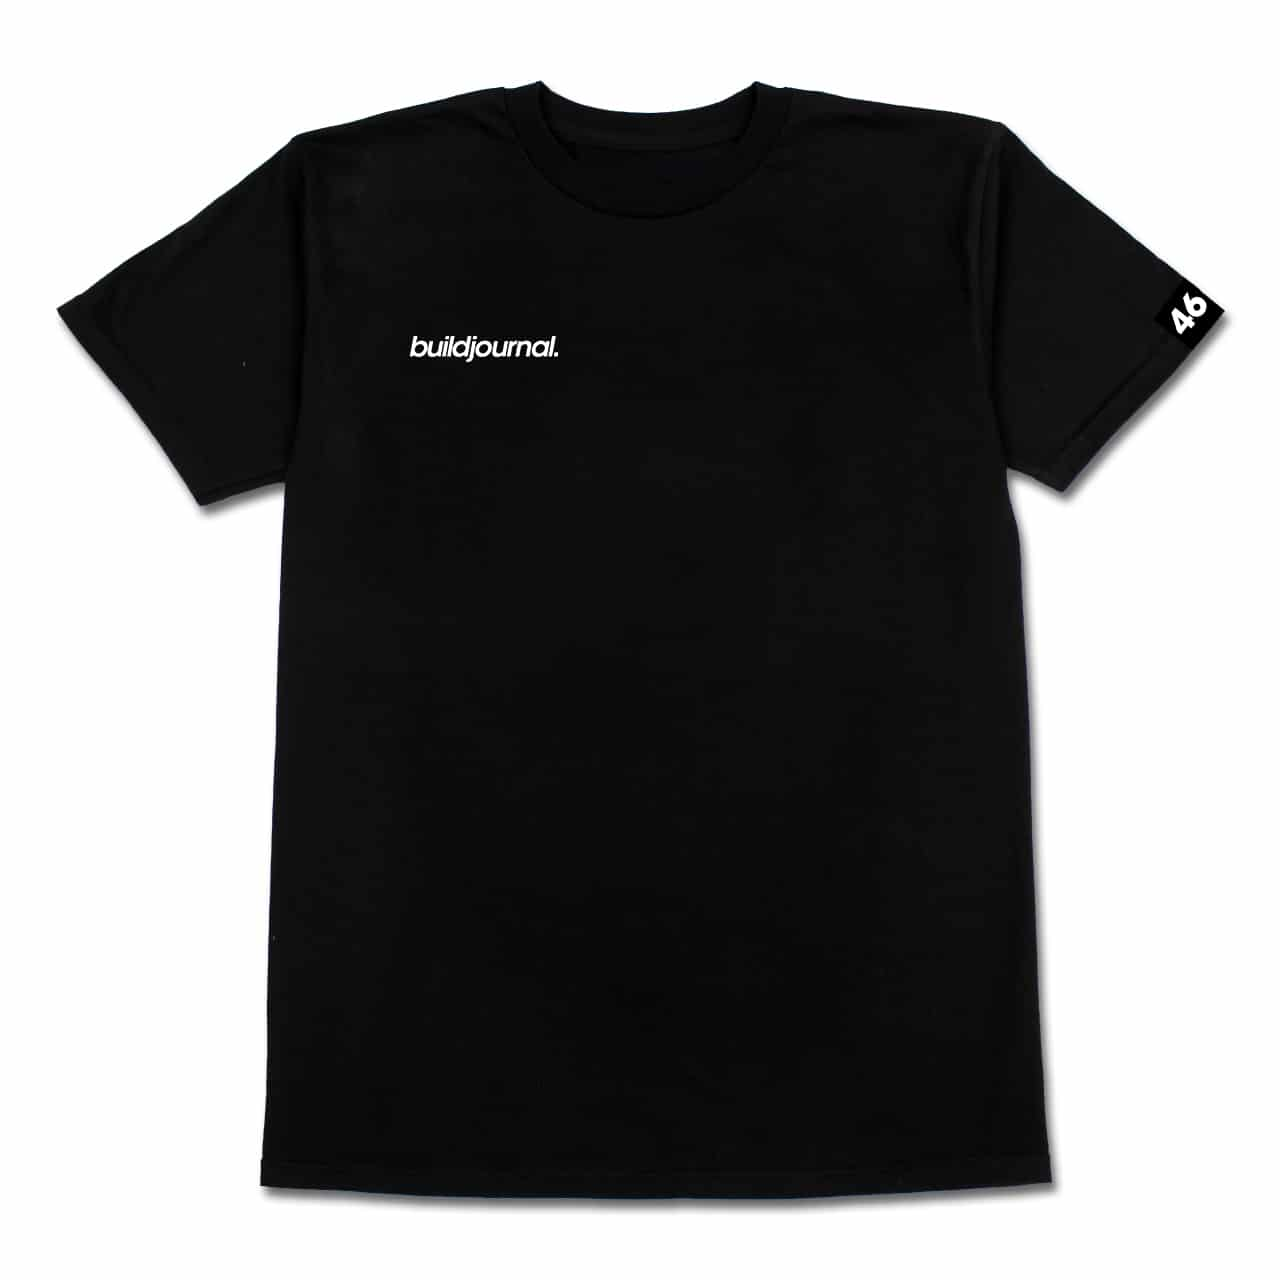 Buildjournal Signature 46 Tee Shirt